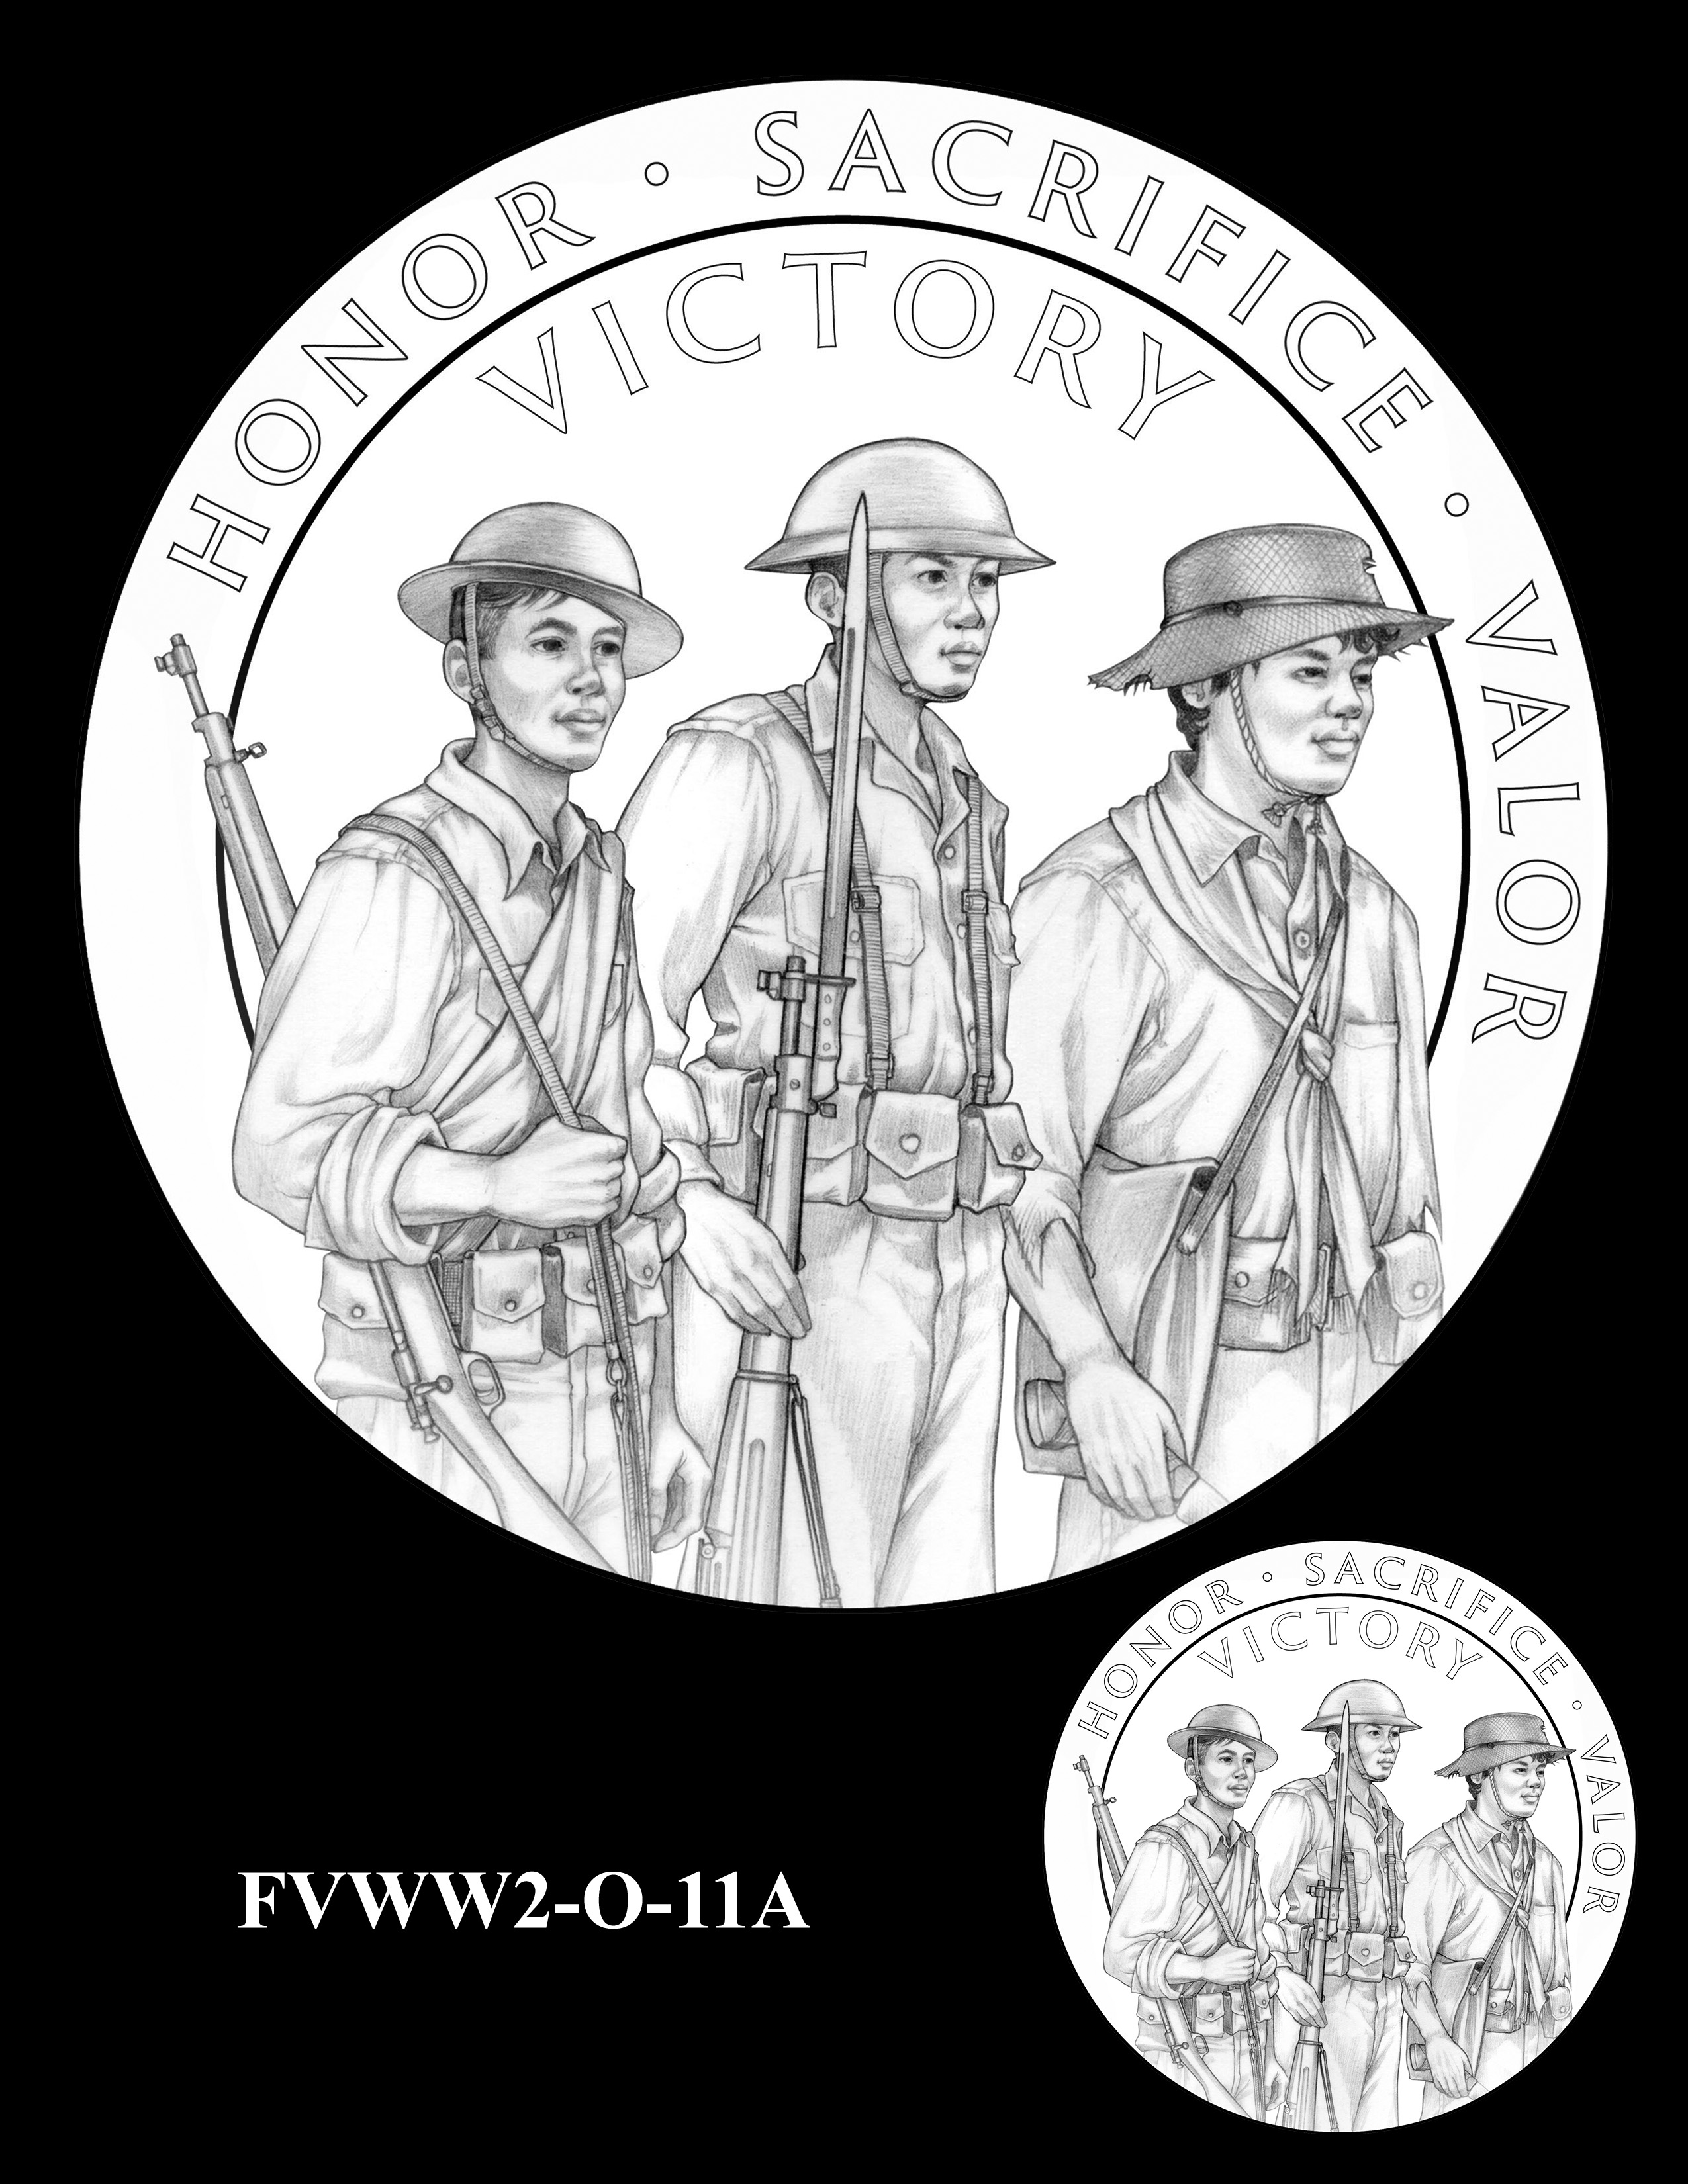 FVWW2-O-11A -- Filipino Veterans of World War II Congressional Gold Medal